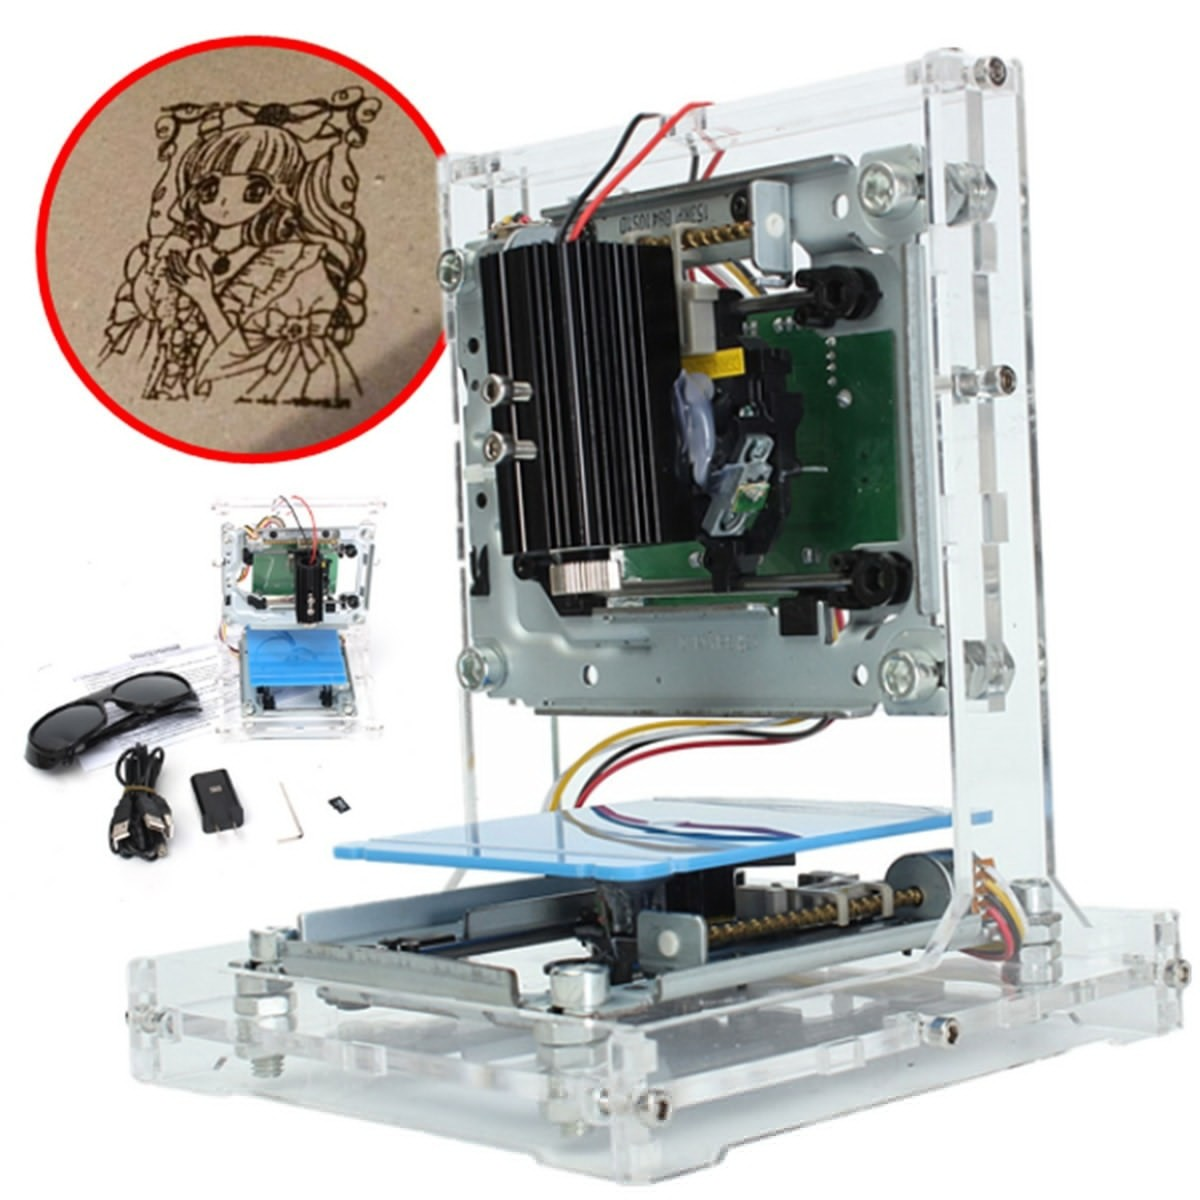 New 38 x 38mm Woodworking Engraving Machine JZ-5 500mW USB DIY Laser Printer Engraver Laser Engraving Machine